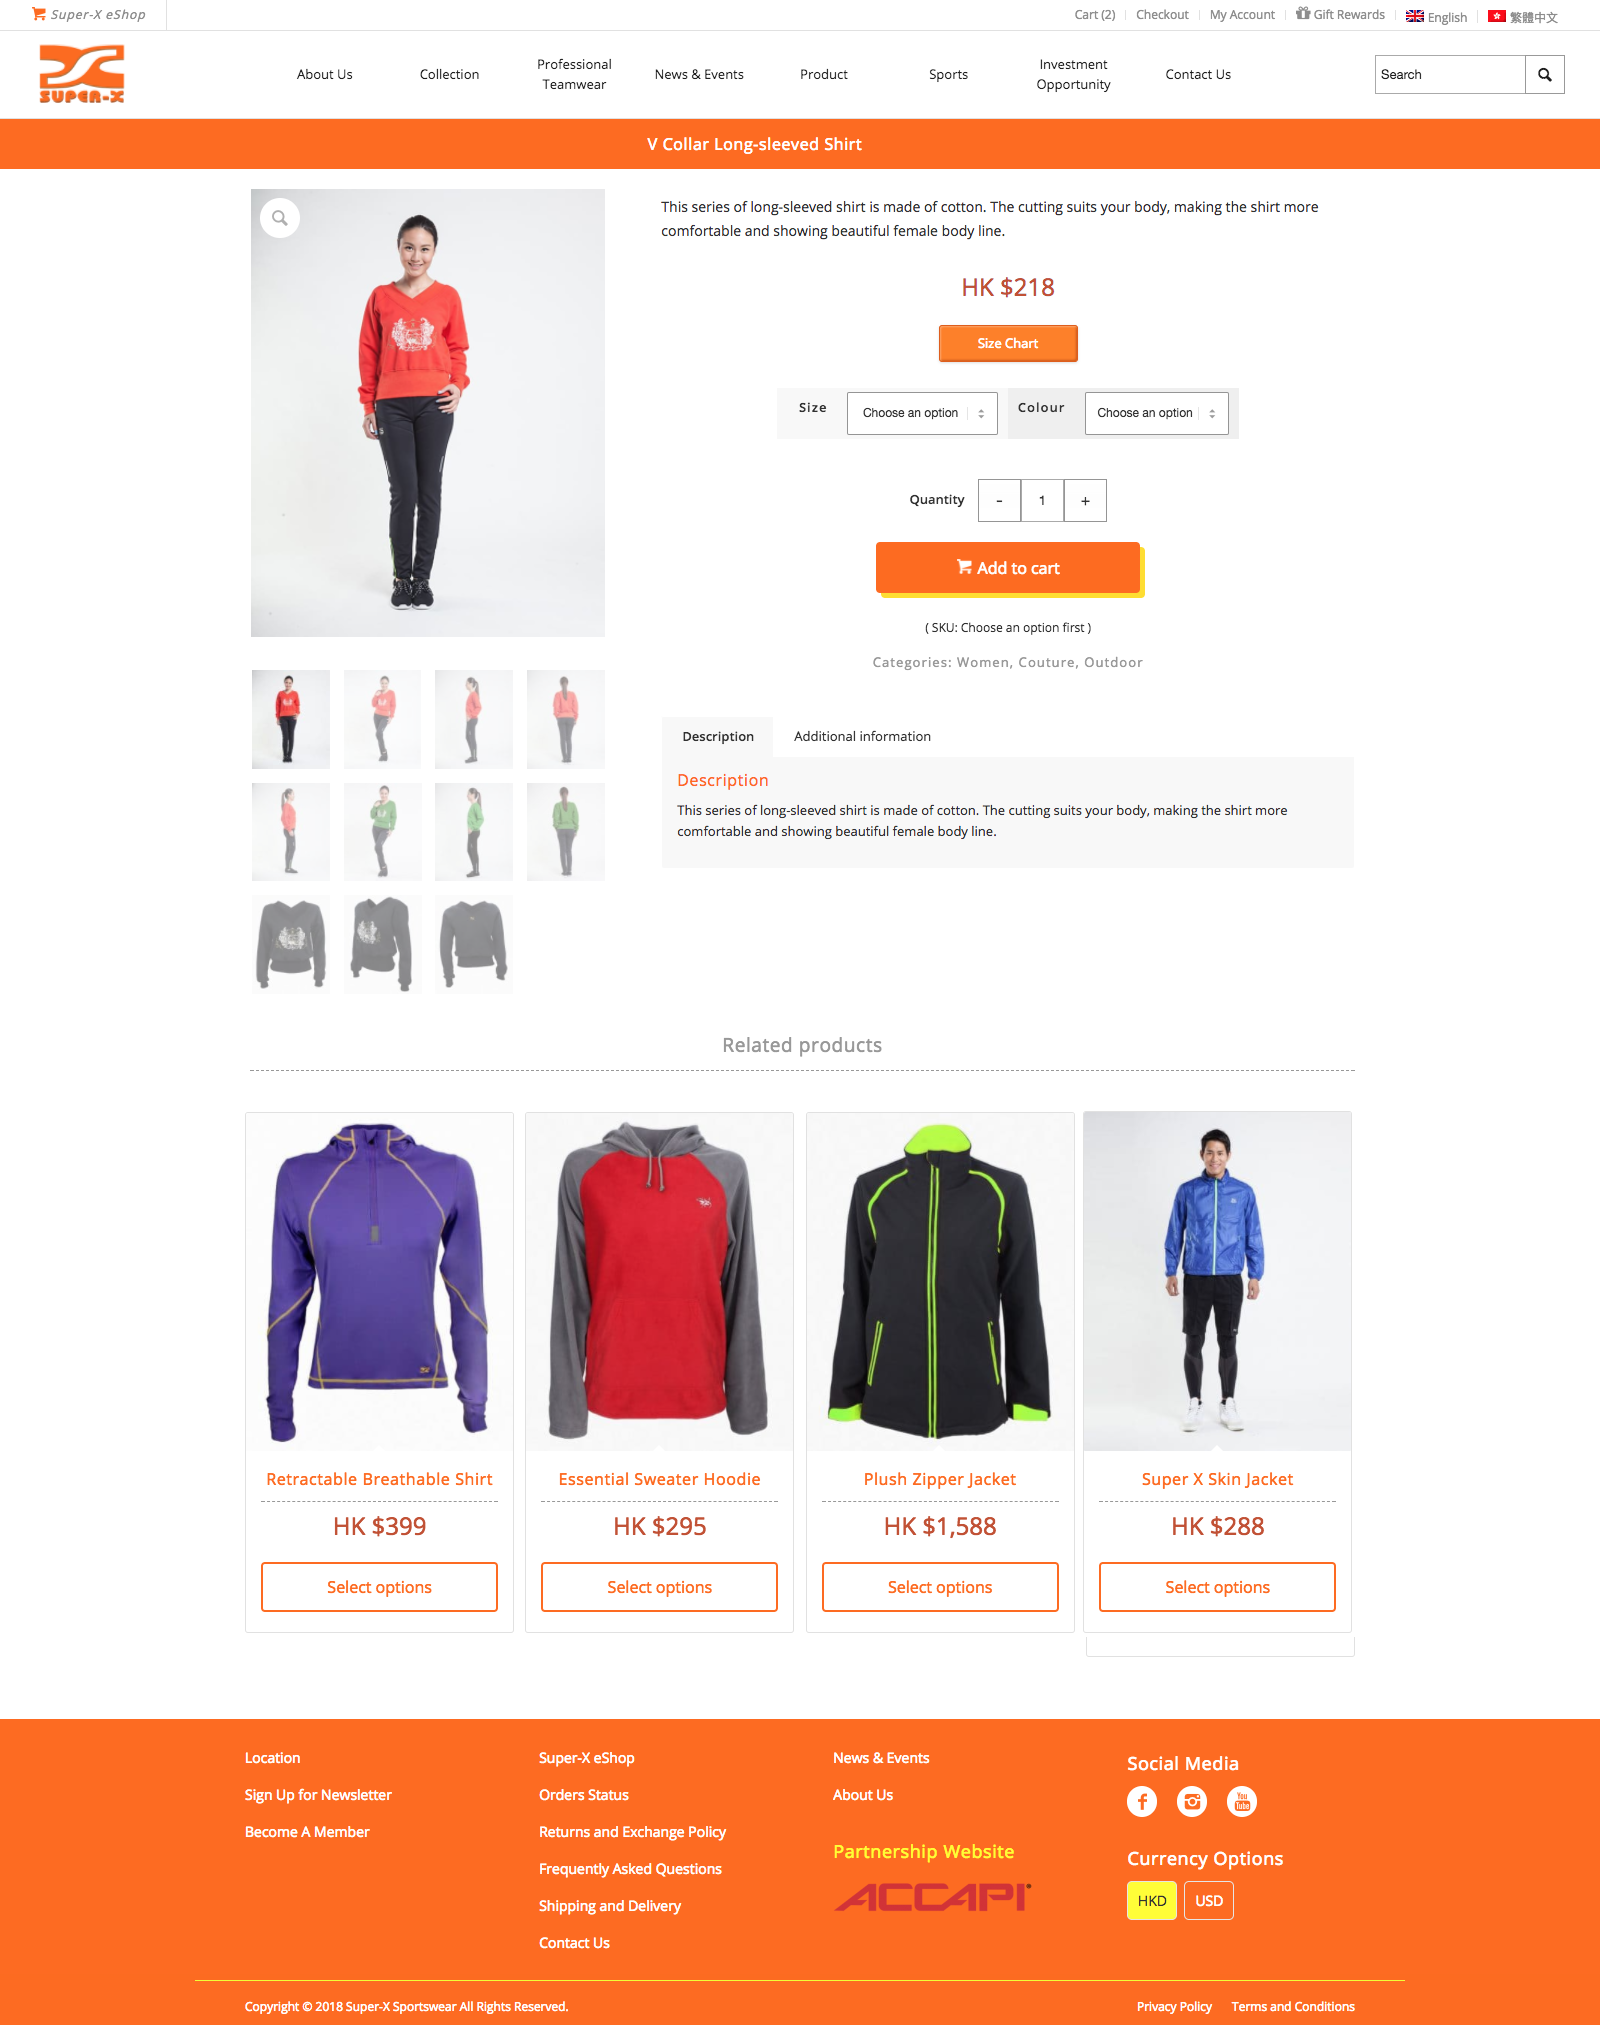 Hong Kong Web Design Company And Website Development Addison Wan Design Is Specializing In Wordpress Jooml Portfolio Web Design Web Design Company Web Design